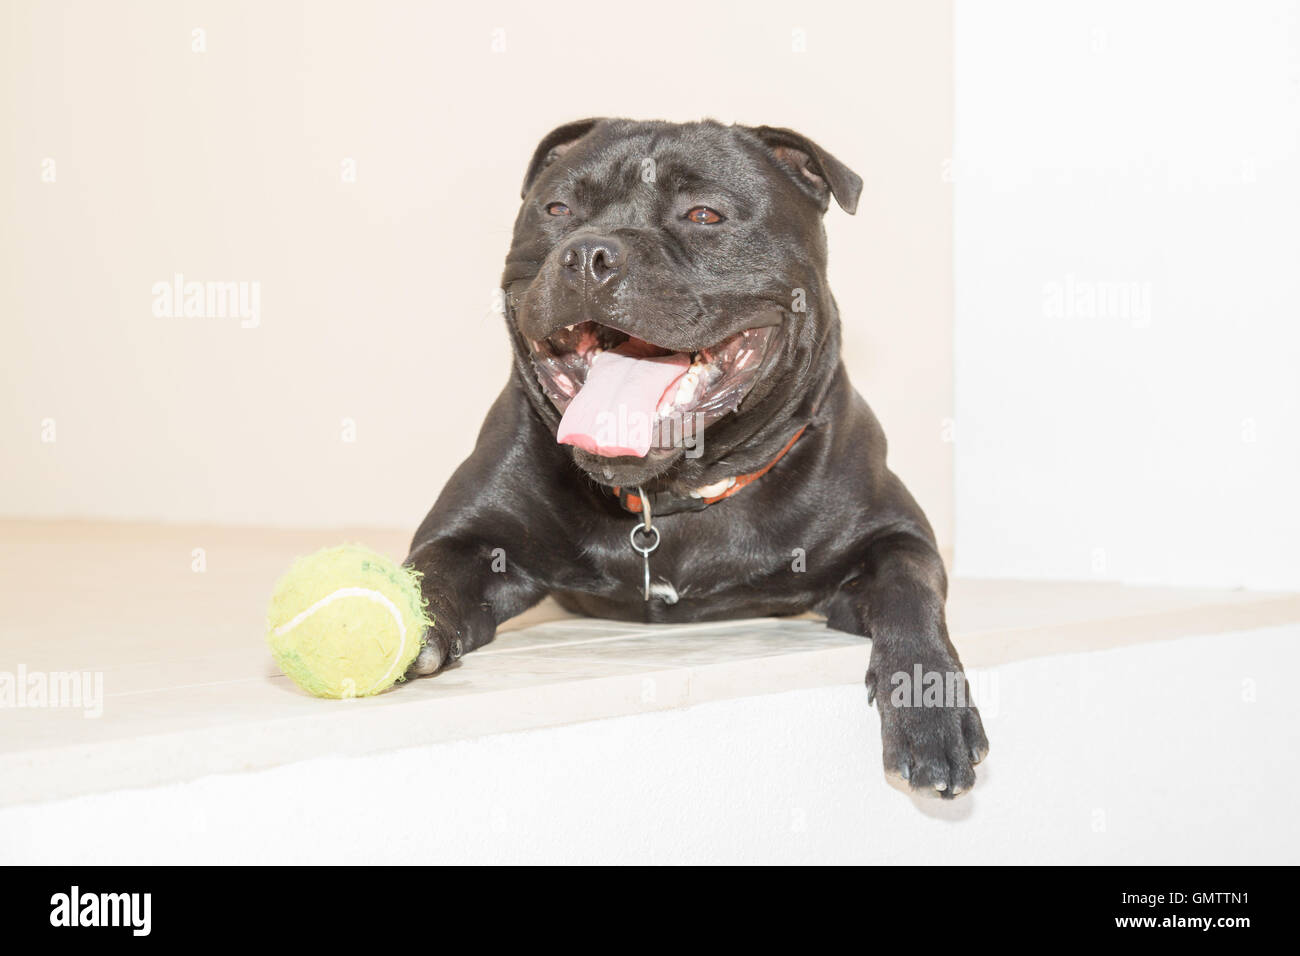 Portrait of a Staffordshire Bull Terrier dog lying down outside on white stone. He has a tennis ball by his side. - Stock Image